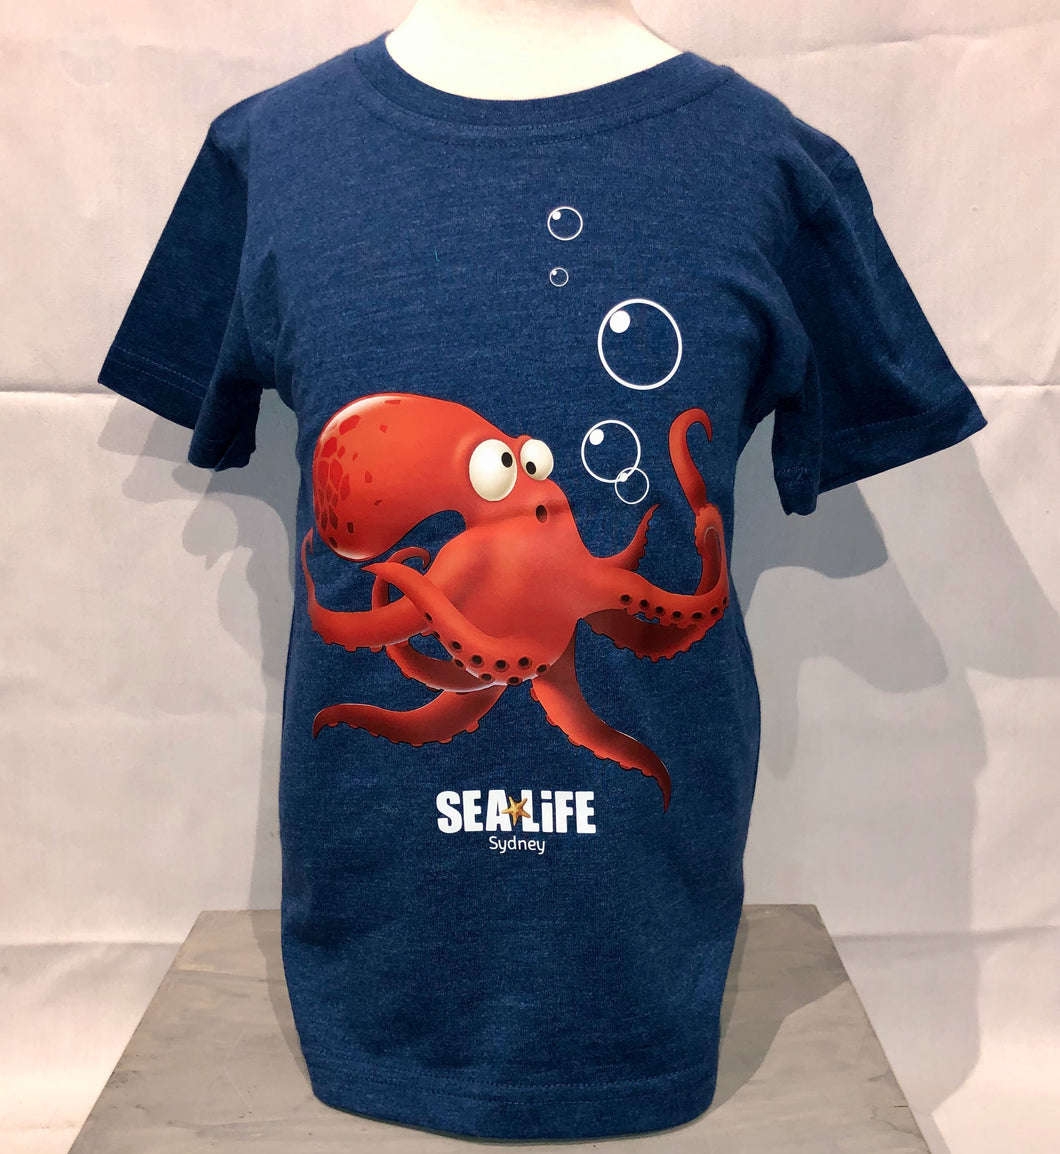 SEA LIFE Sydney Octopus Kids t-shirt Blue Marle